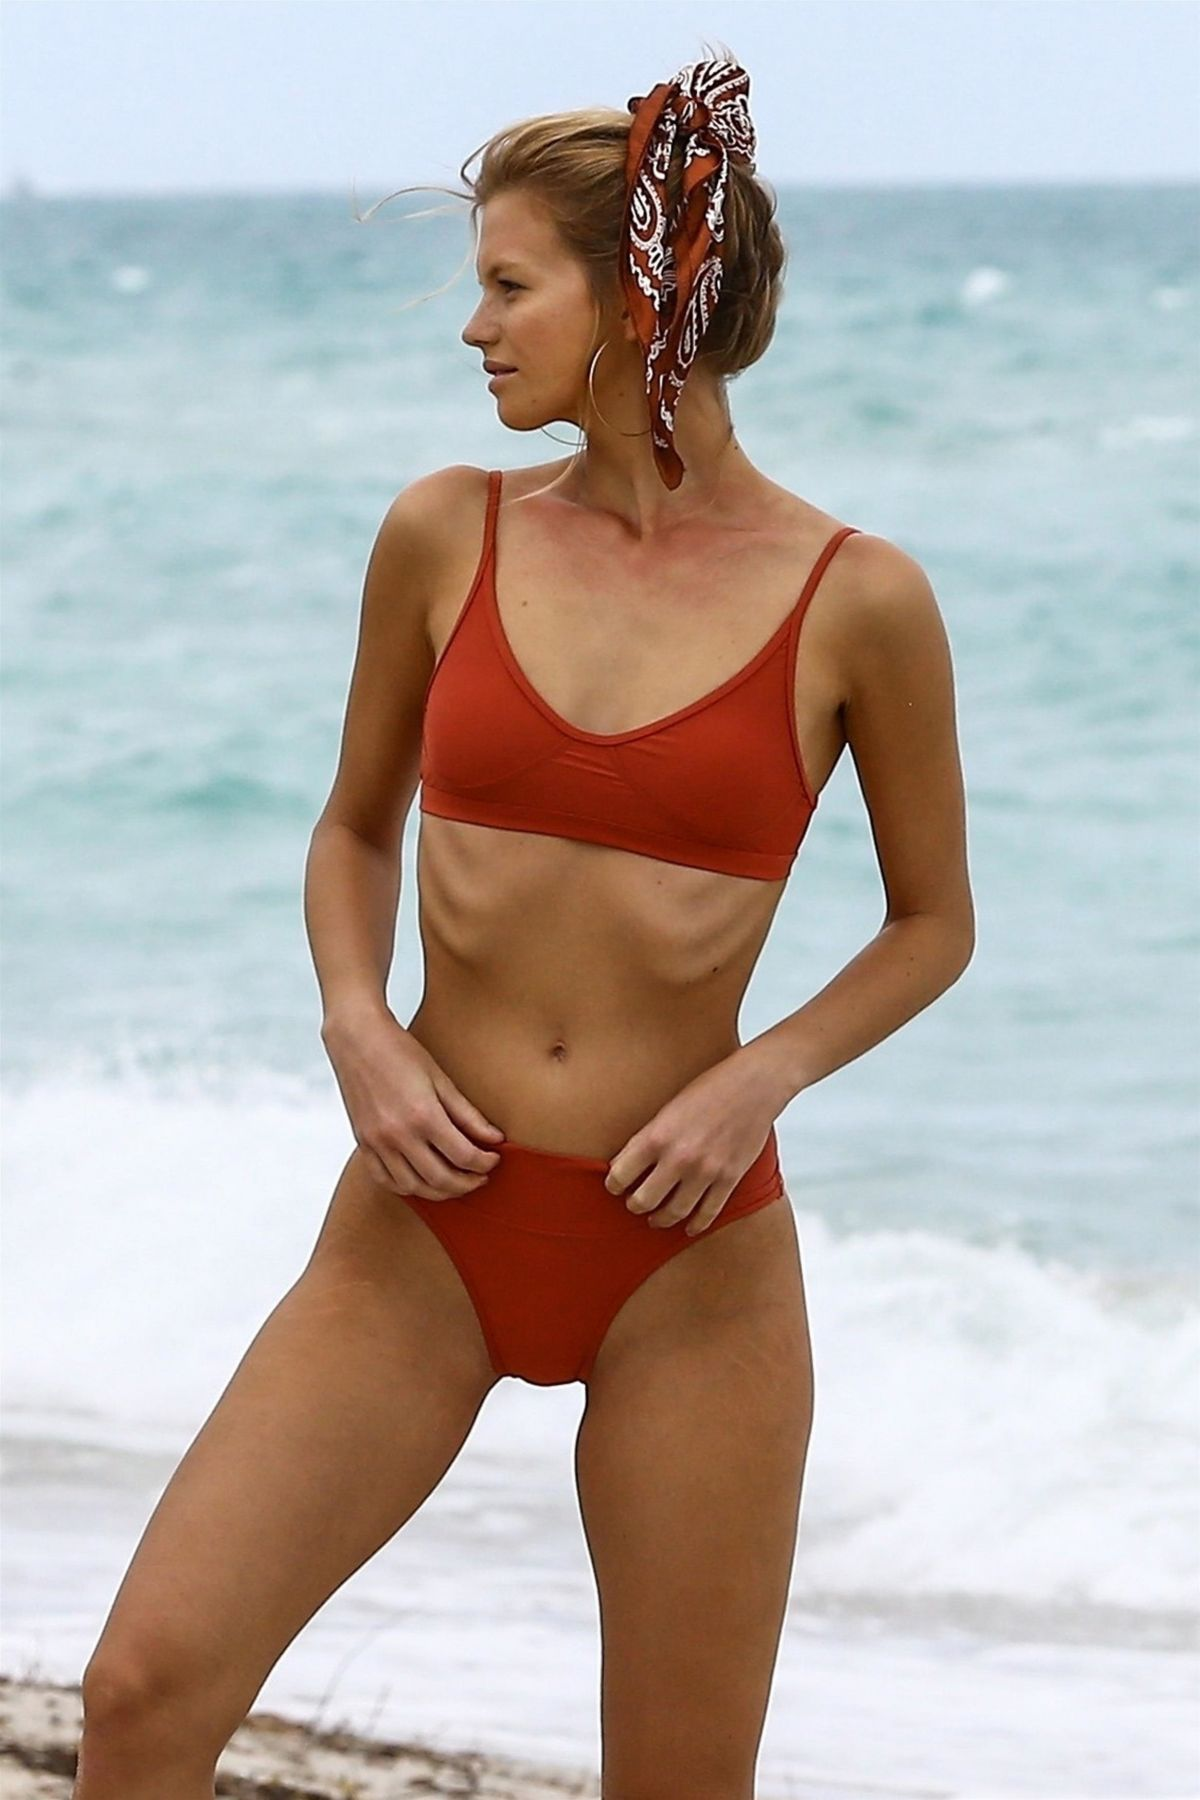 71987c902e231 Nadine Leopold Models a variety of swimsuits during a photoshoot on the  beach in Miami